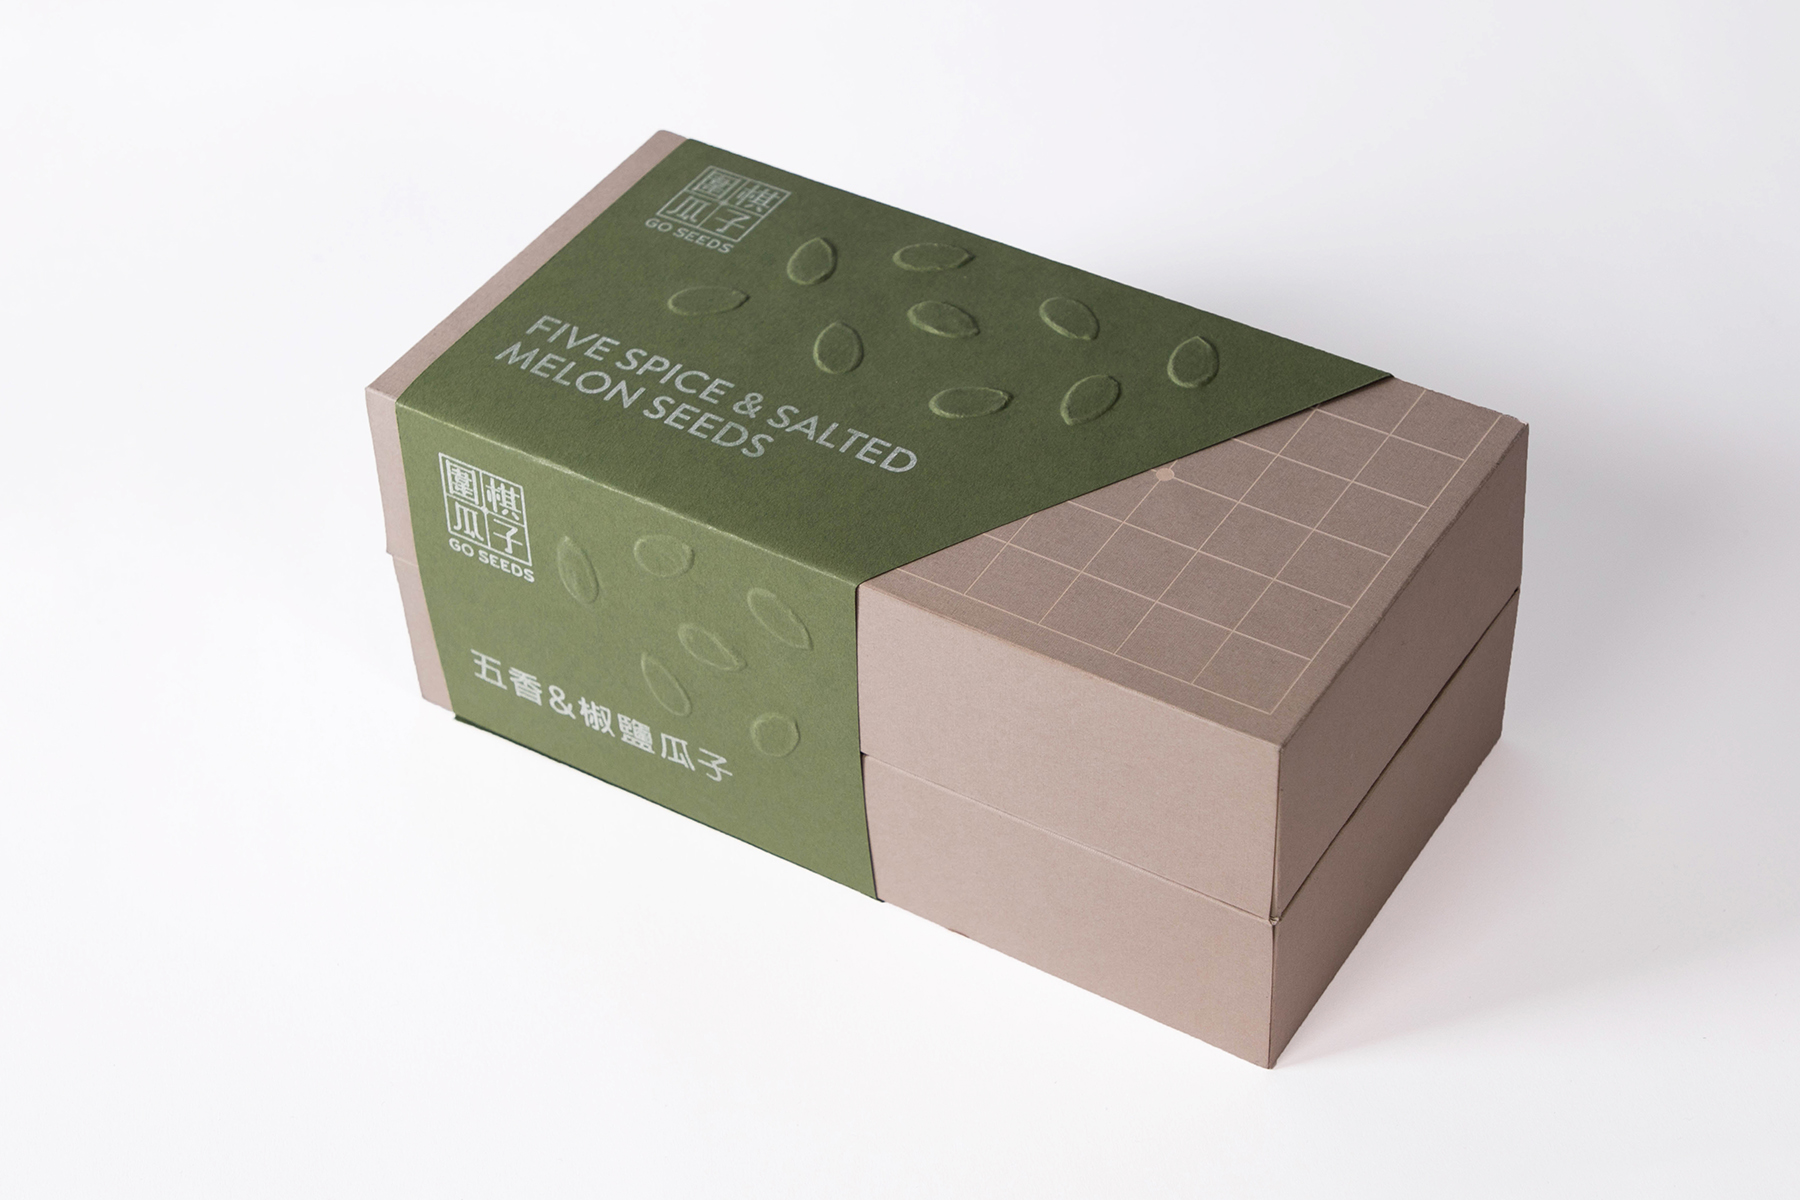 GoSeeds_Box